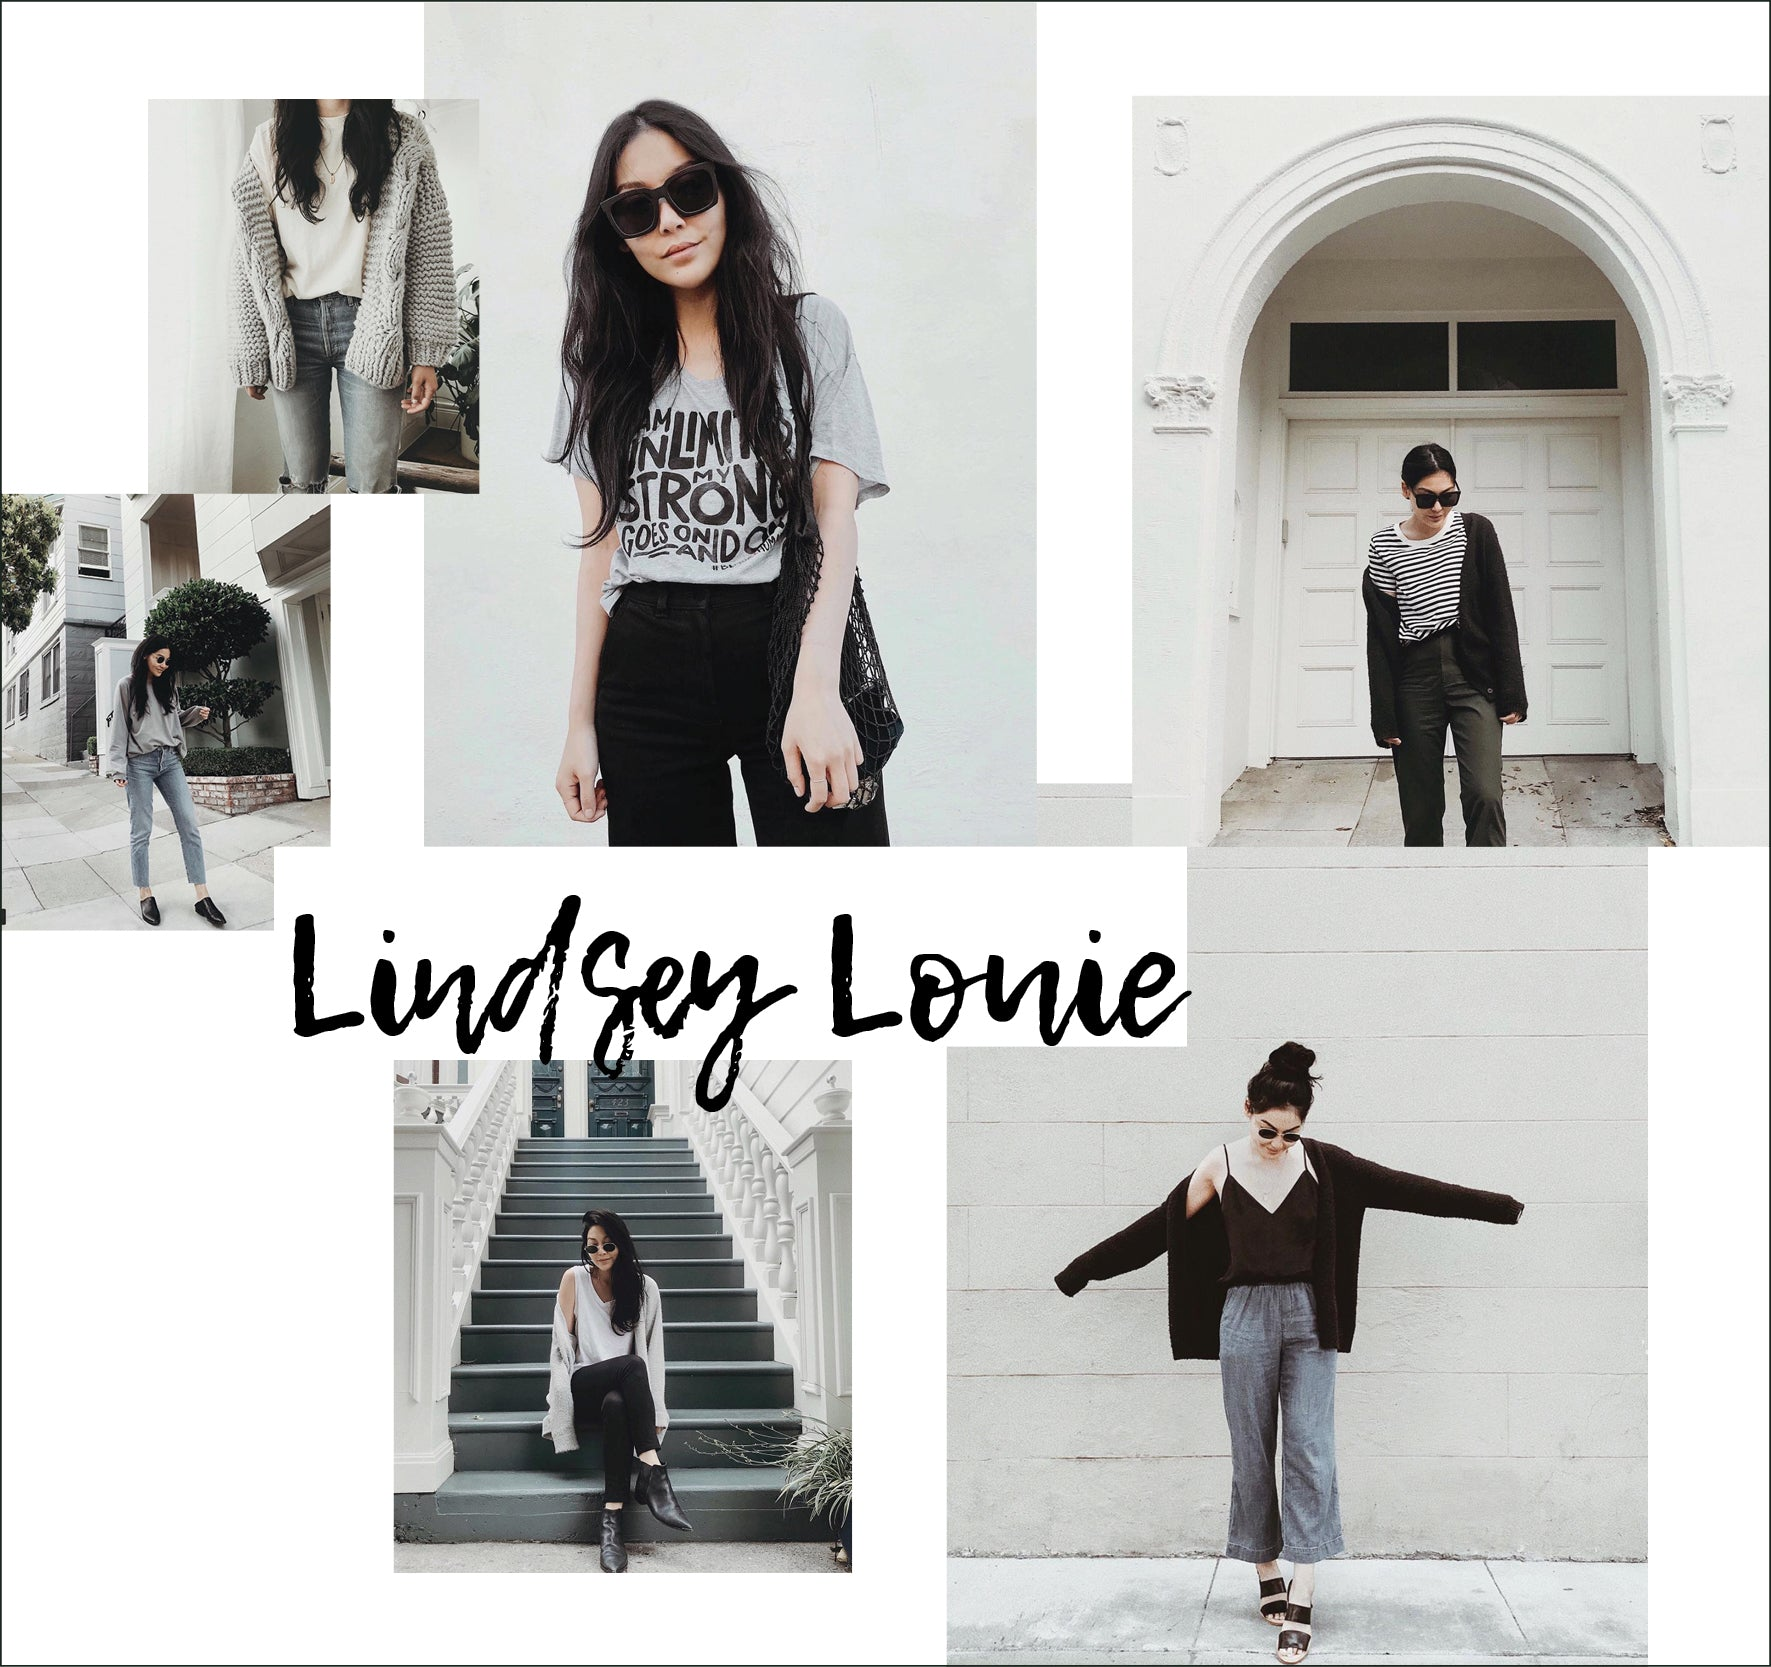 Lindsey Louie instagram images collage design as style icon muse featured on ownmuse.com